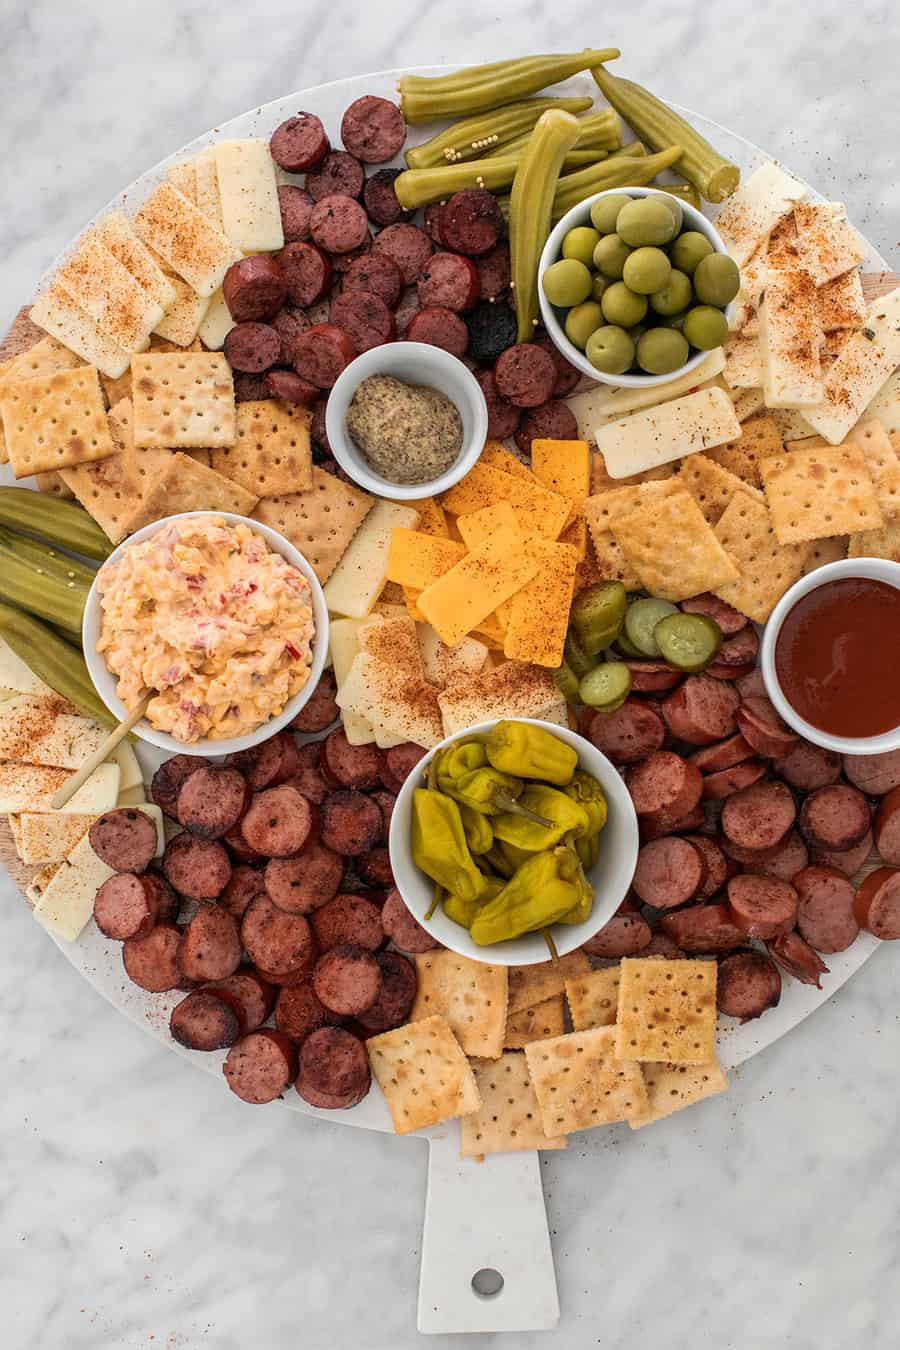 Cheese and meat platter with crackers, sausage, cheese, pimento cheese, pickles and olives.